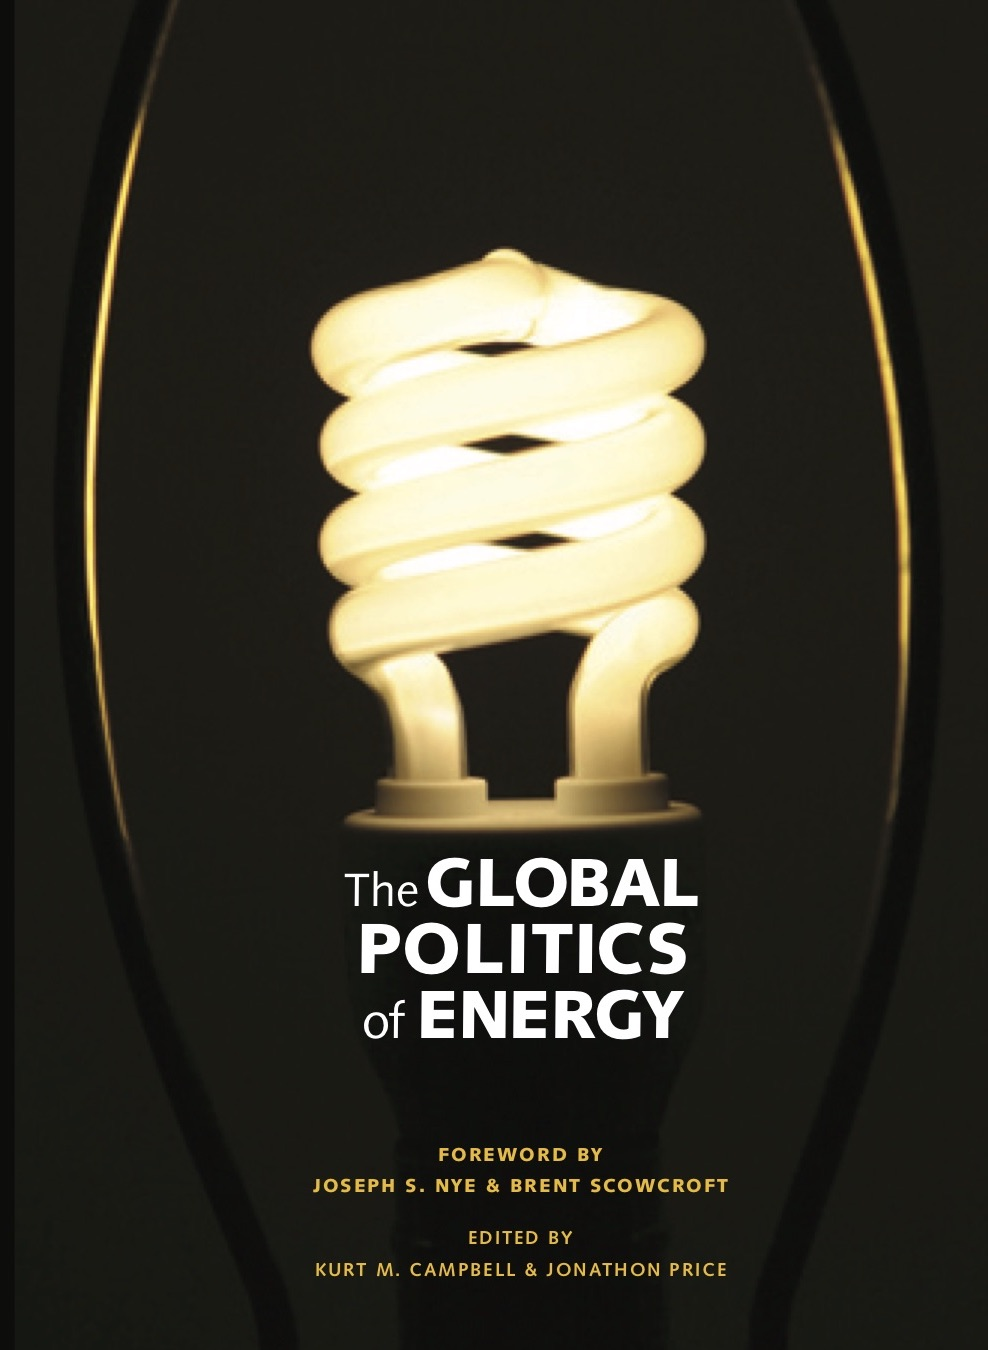 the global politics of energy - This book is a collection of papers prepared for the 2007 summer Aspen Strategy Group conference on The Global Politics of Energy. This cross-disciplinary and high-level examination of policy strategies for addressing the challenges posed by the soaring demand for oil, the rise of petro-powers, and the implications of climate change makes energy security issues urgently relevant to the American and global policy communities.Contributors include: Jeffrey Bader, Stephen Biegun, Ivo Bozon, Diana Farrell, Jay Gulledge, Robert Hefner, John Podesta, Dennis Ross, David Rothkopf, Angela Stent, David Victor, and Daniel YerginPublished: April 1, 2008